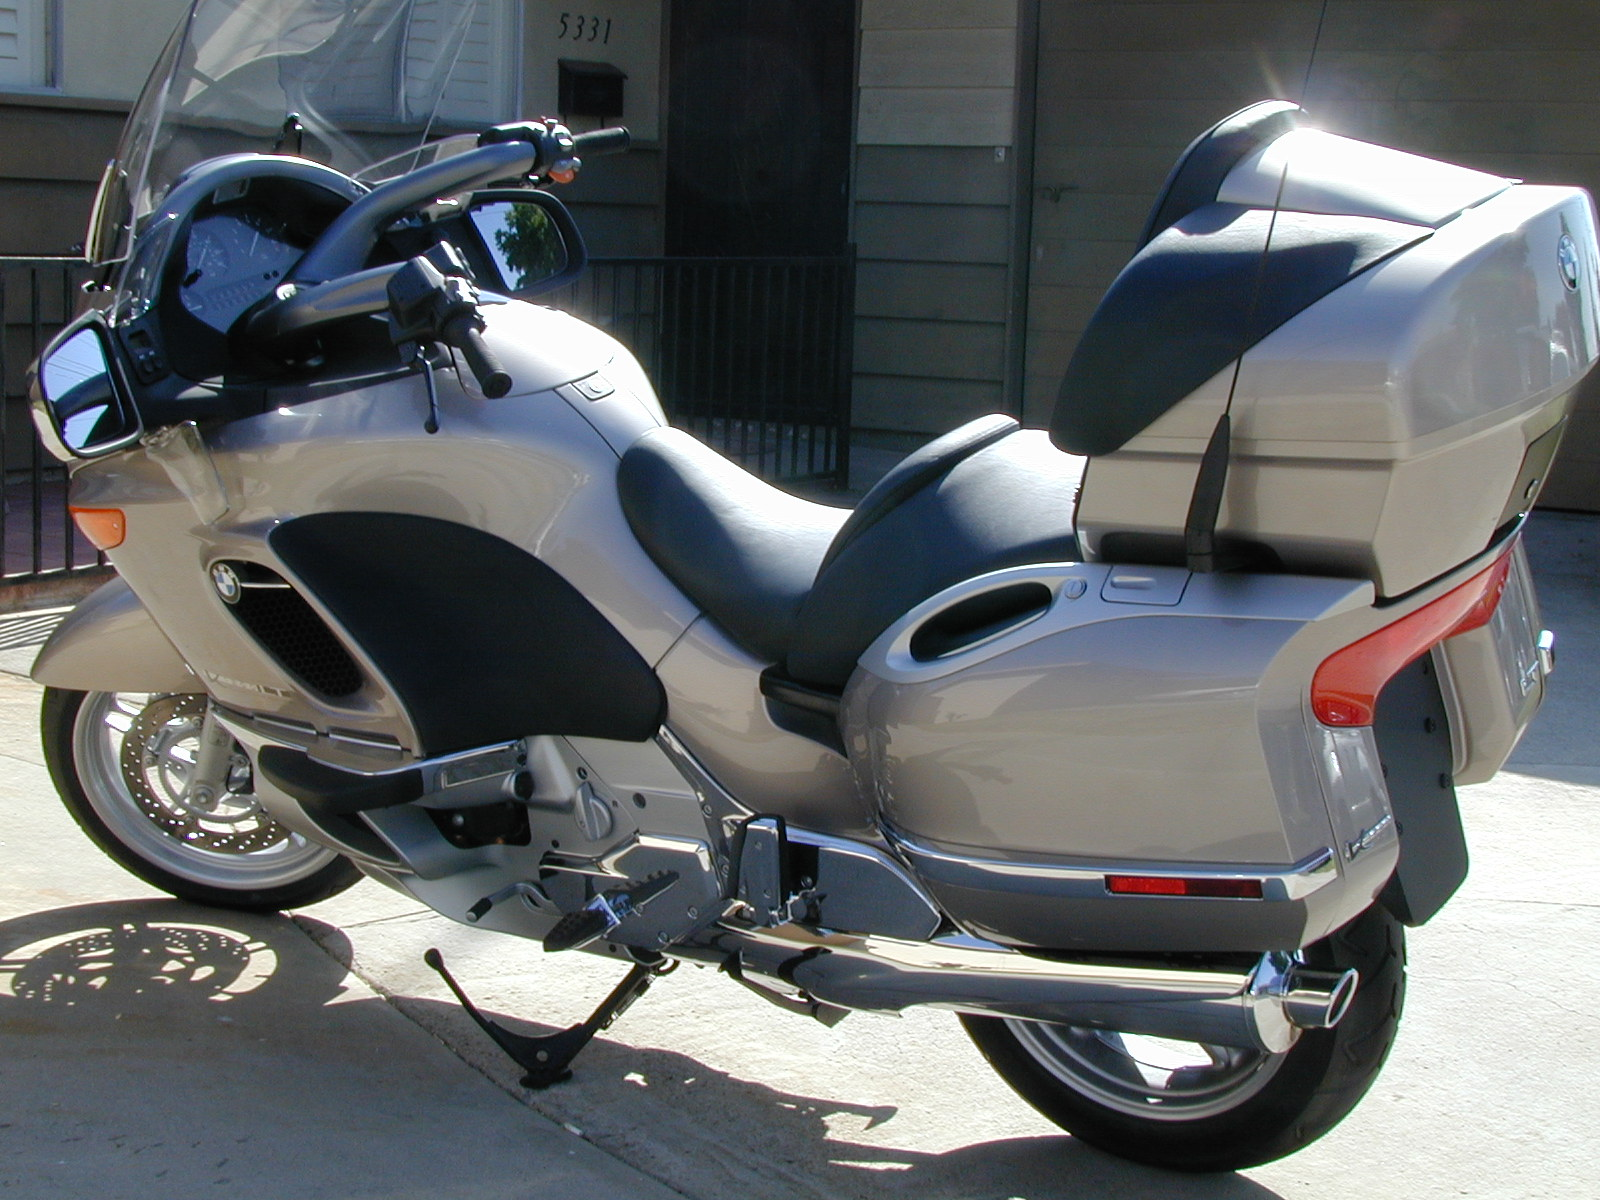 Bmw k1200lt photo - 1